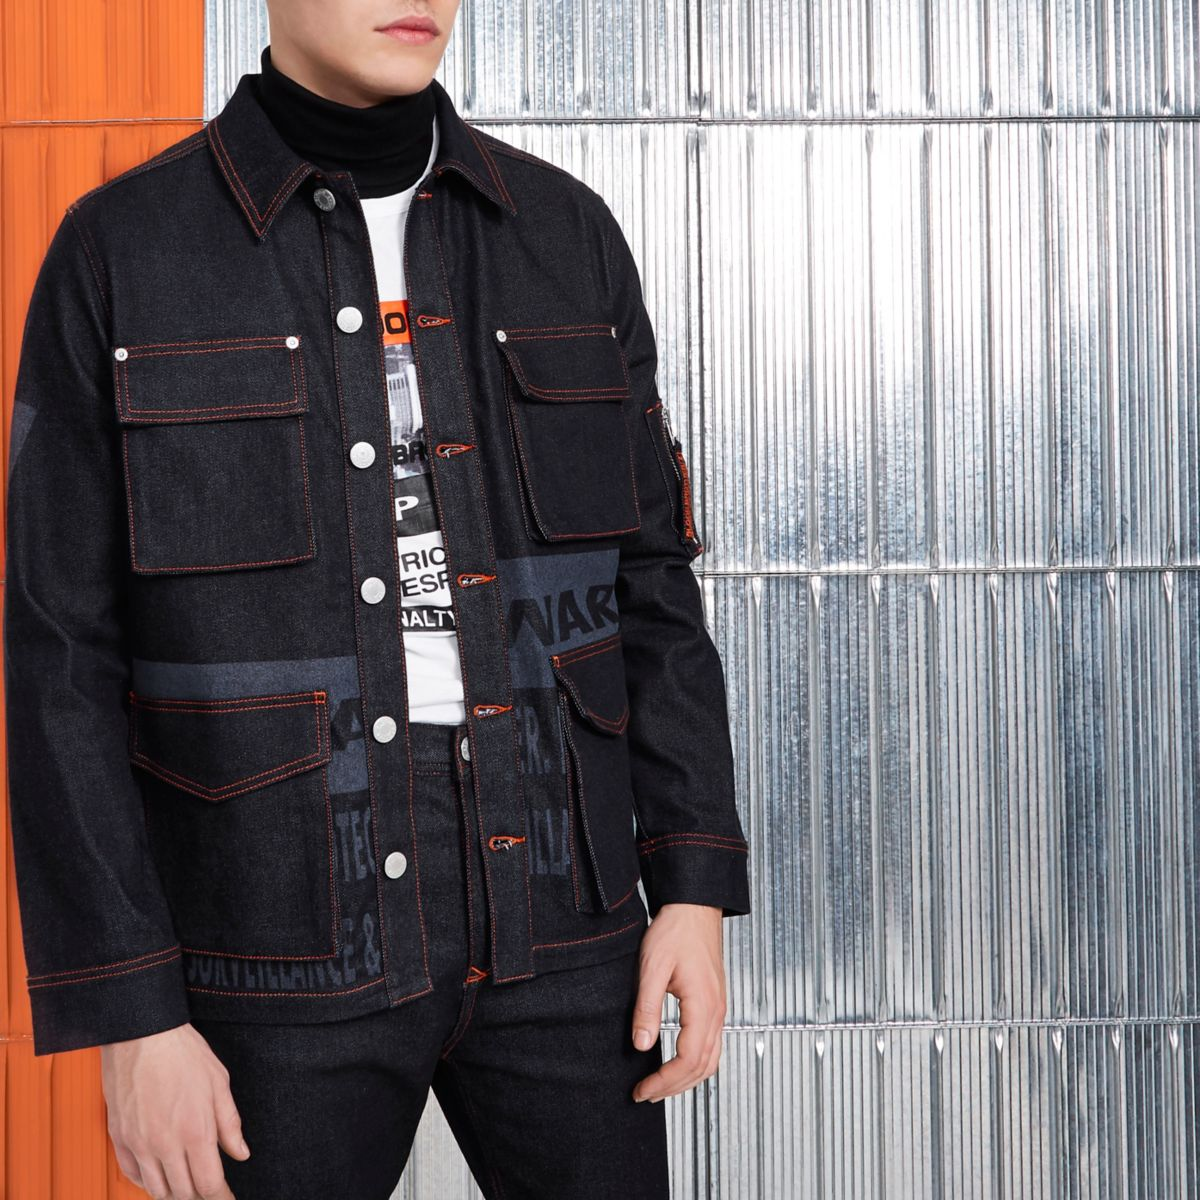 Navy Blood Brother denim jacket